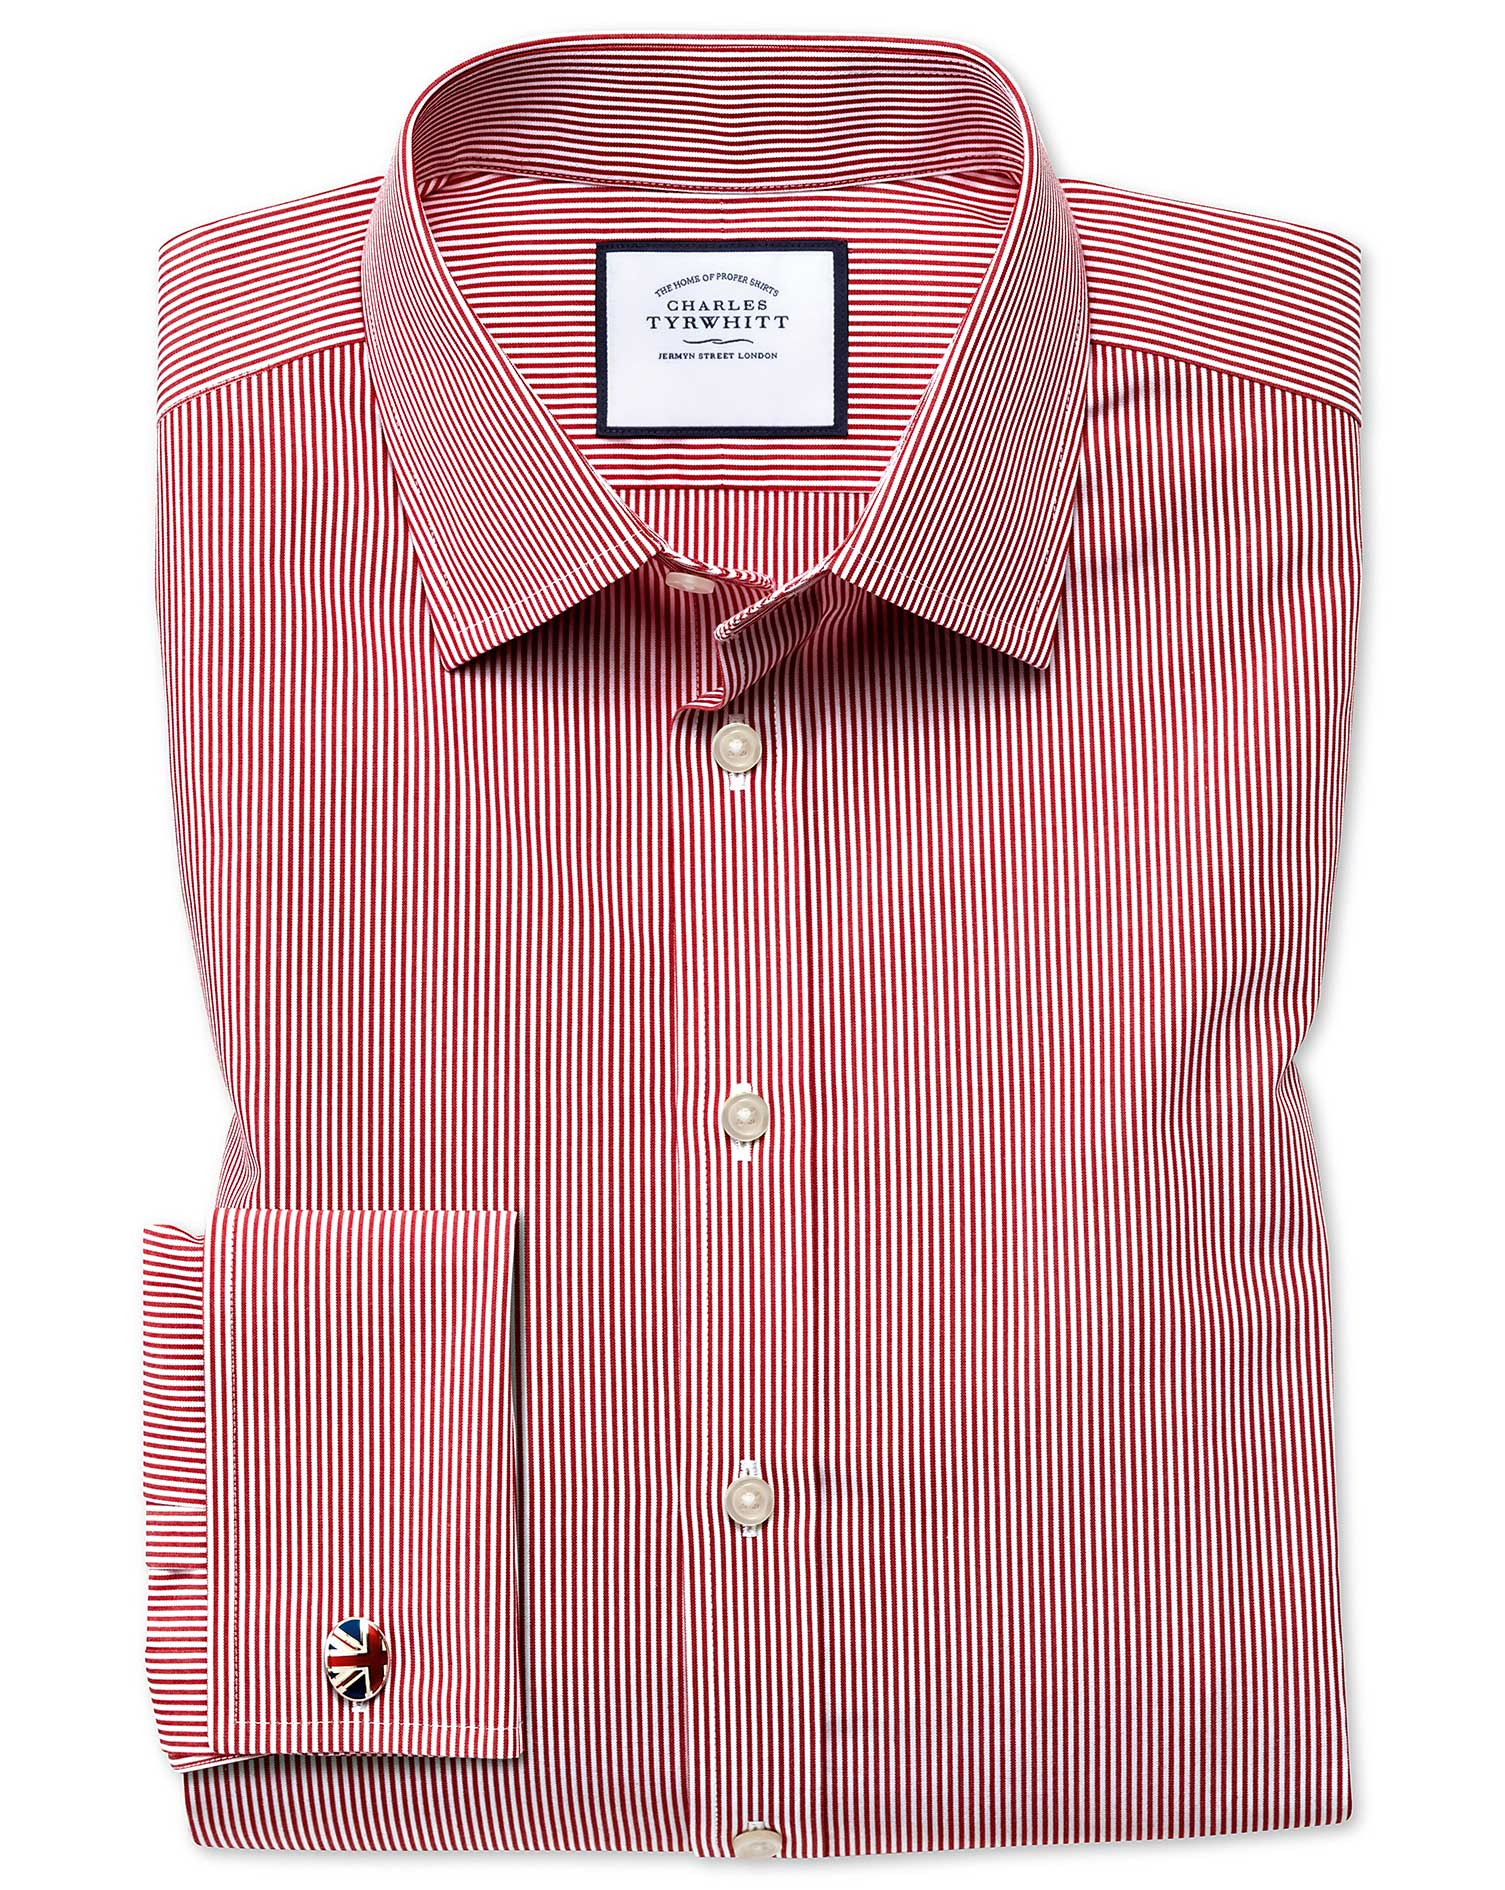 Slim Fit Non-Iron Bengal Stripe Red Cotton Formal Shirt Single Cuff Size 15/33 by Charles Tyrwhitt